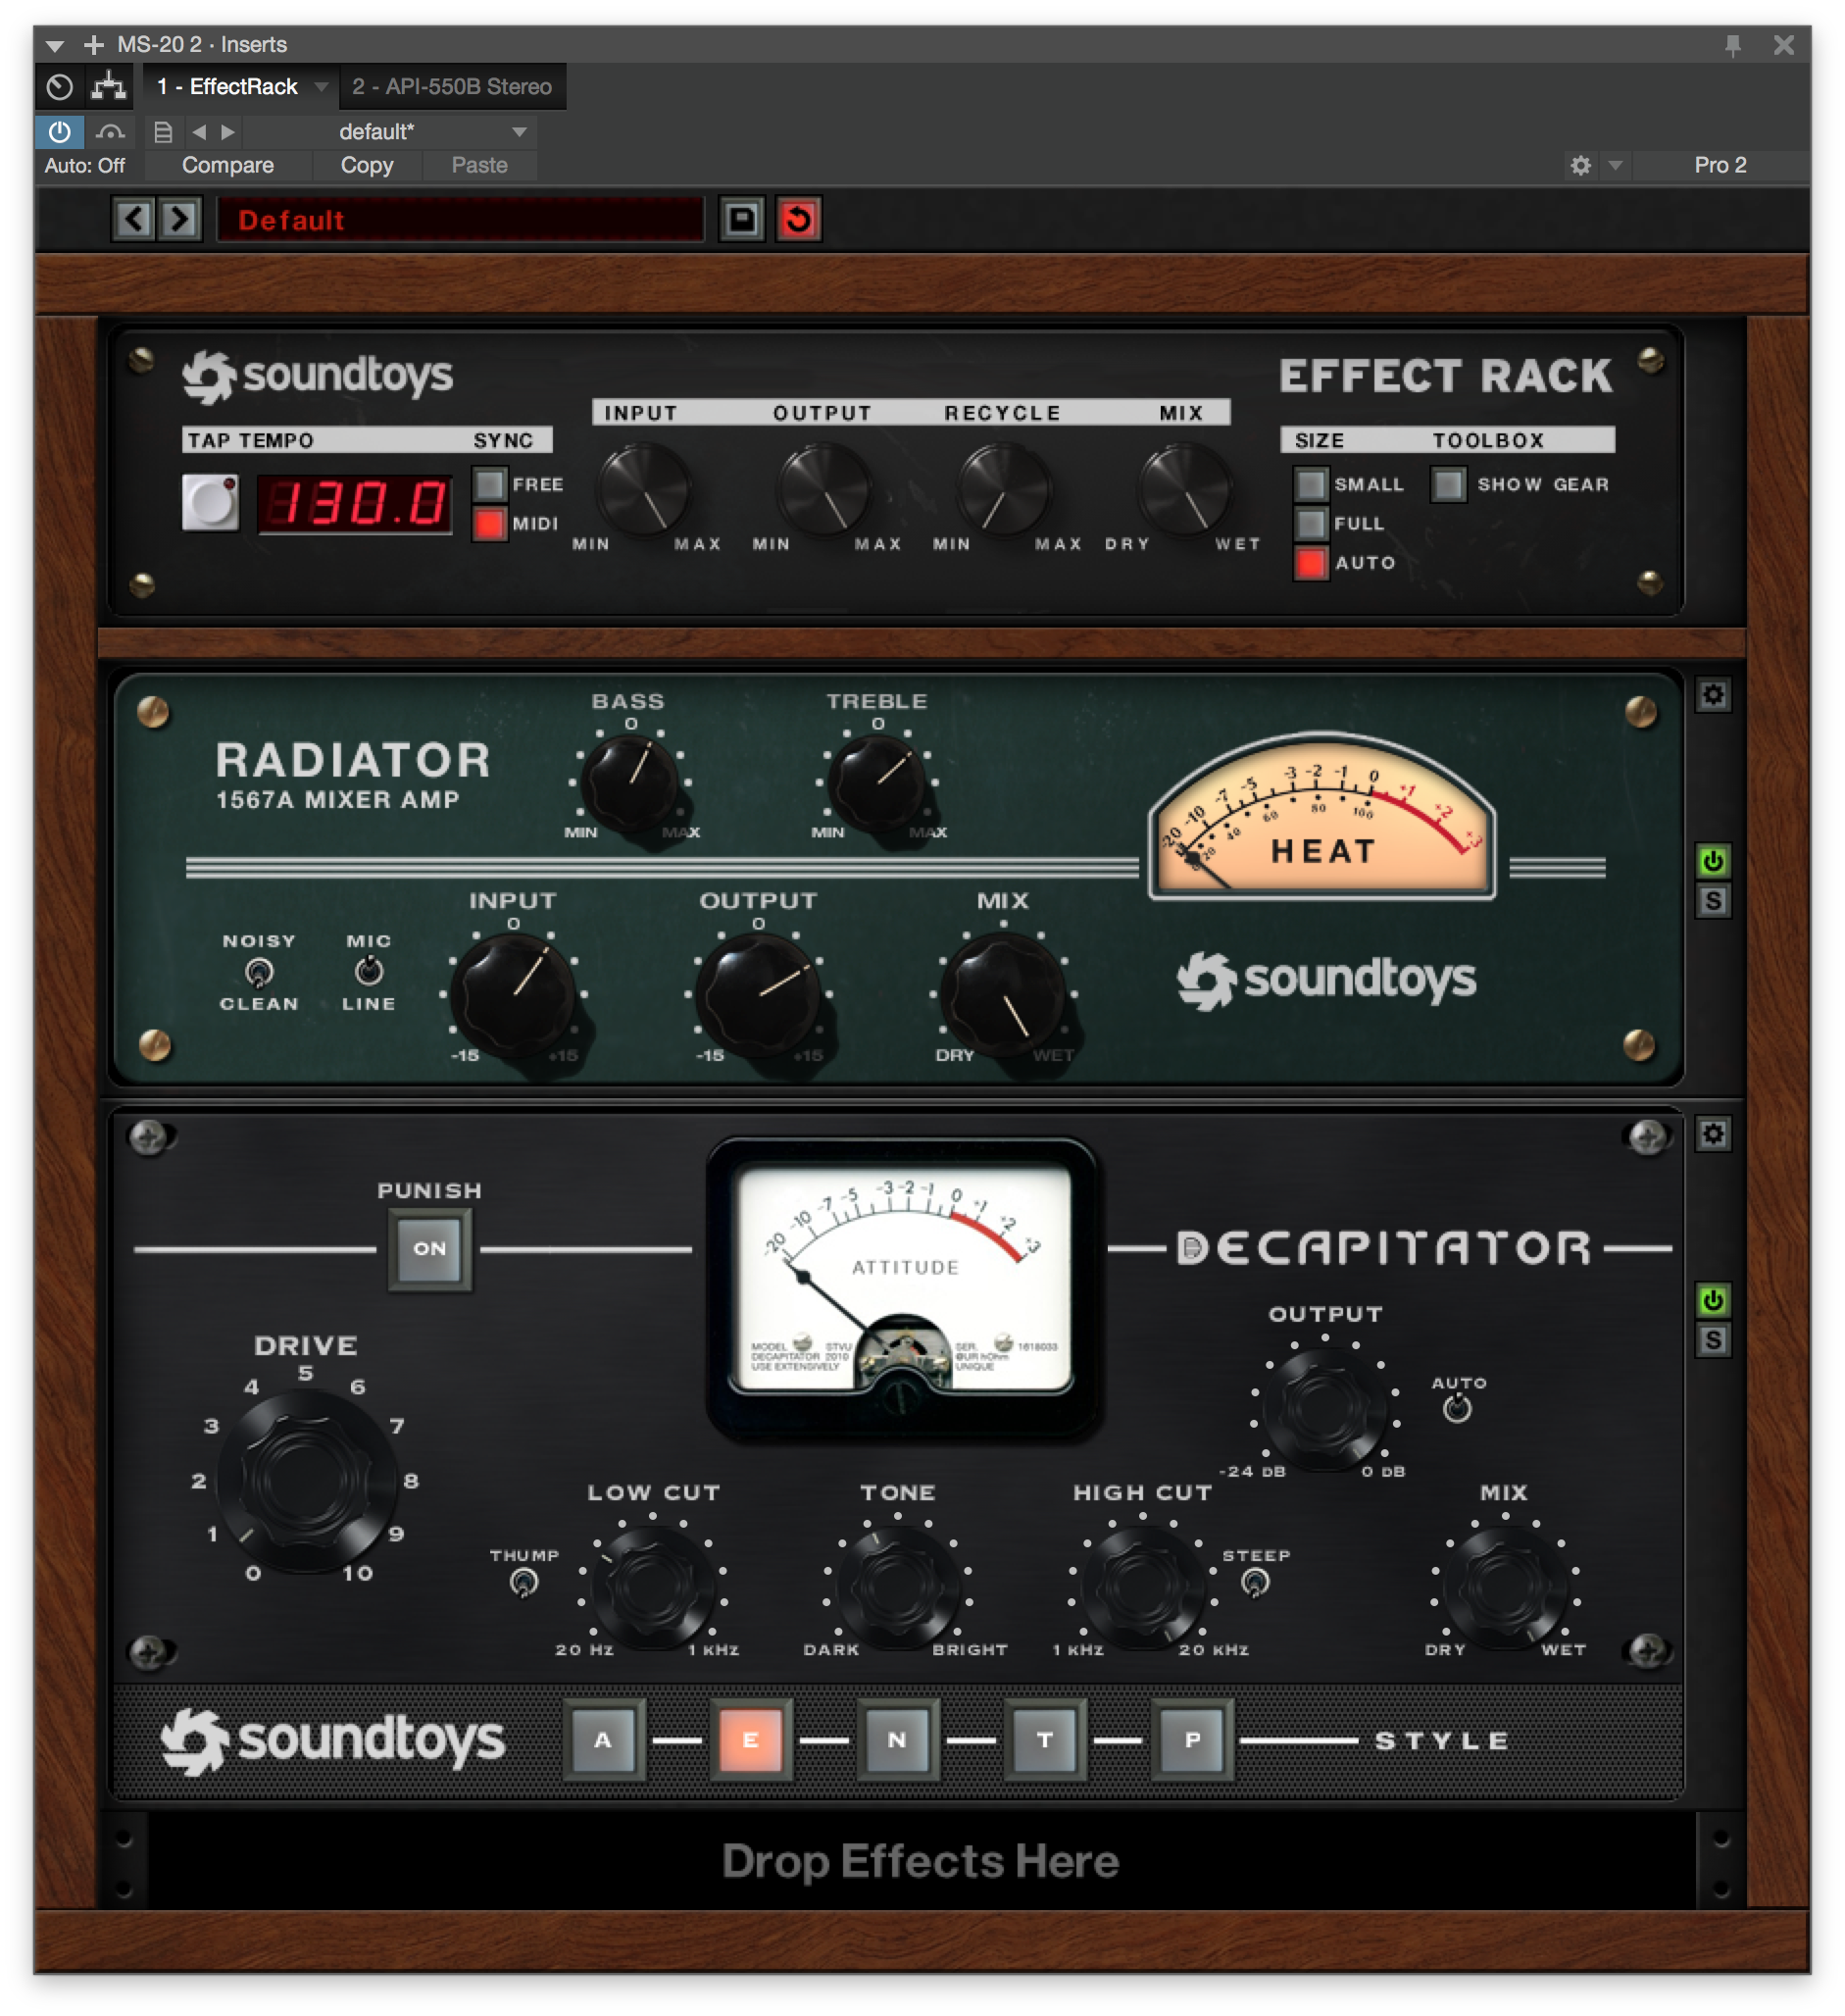 Reproducing Neve tones with SoundToys - David Lilja - Medium